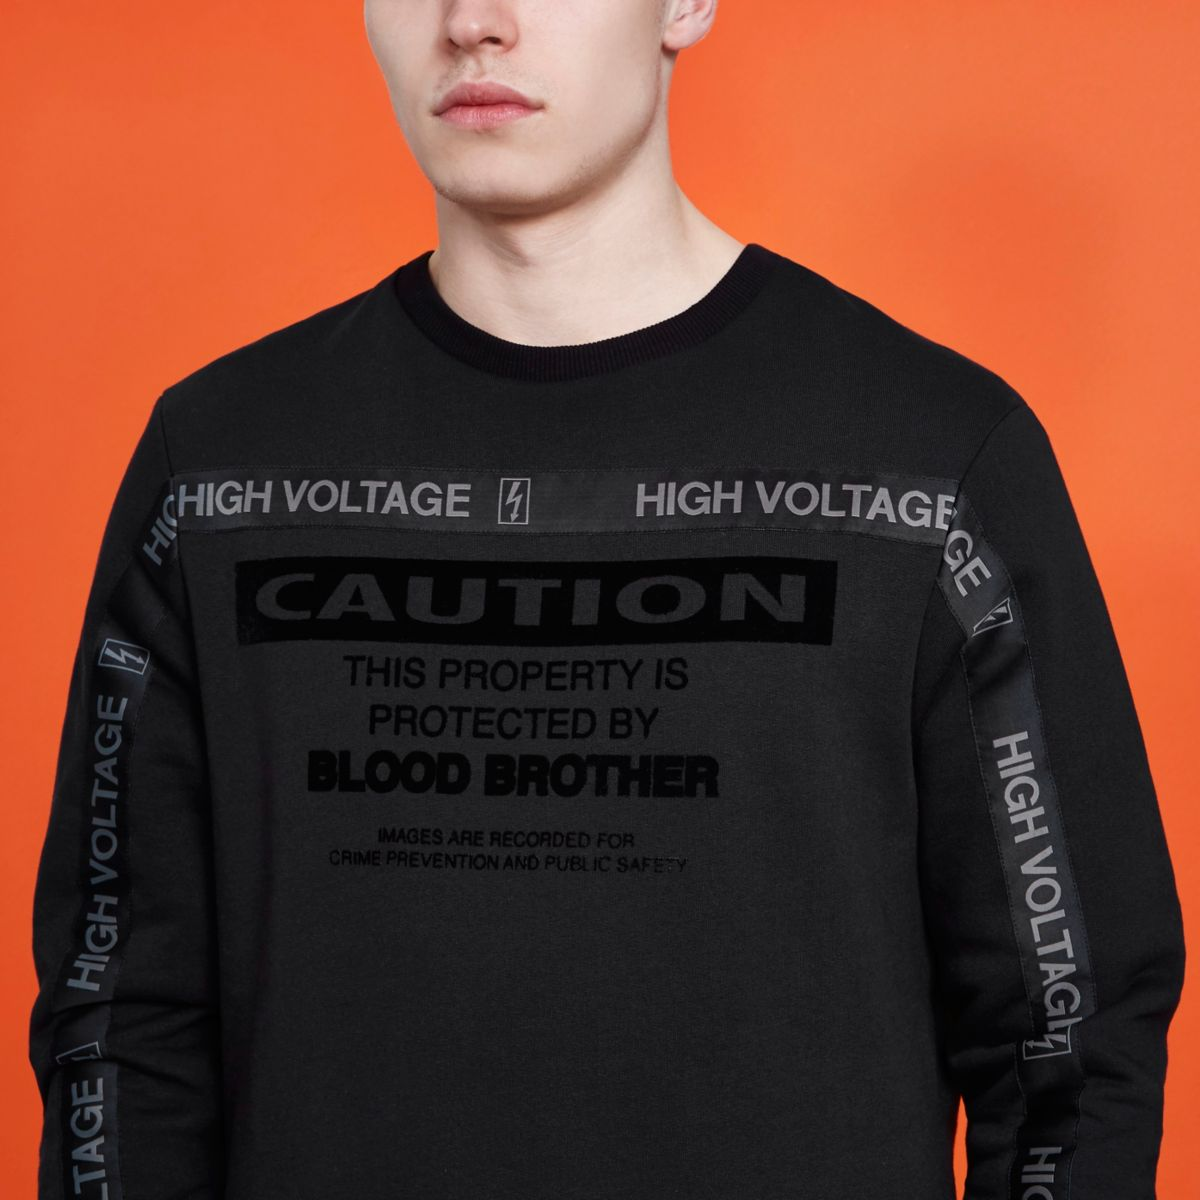 Black Blood Brother 'caution' tape sweatshirt